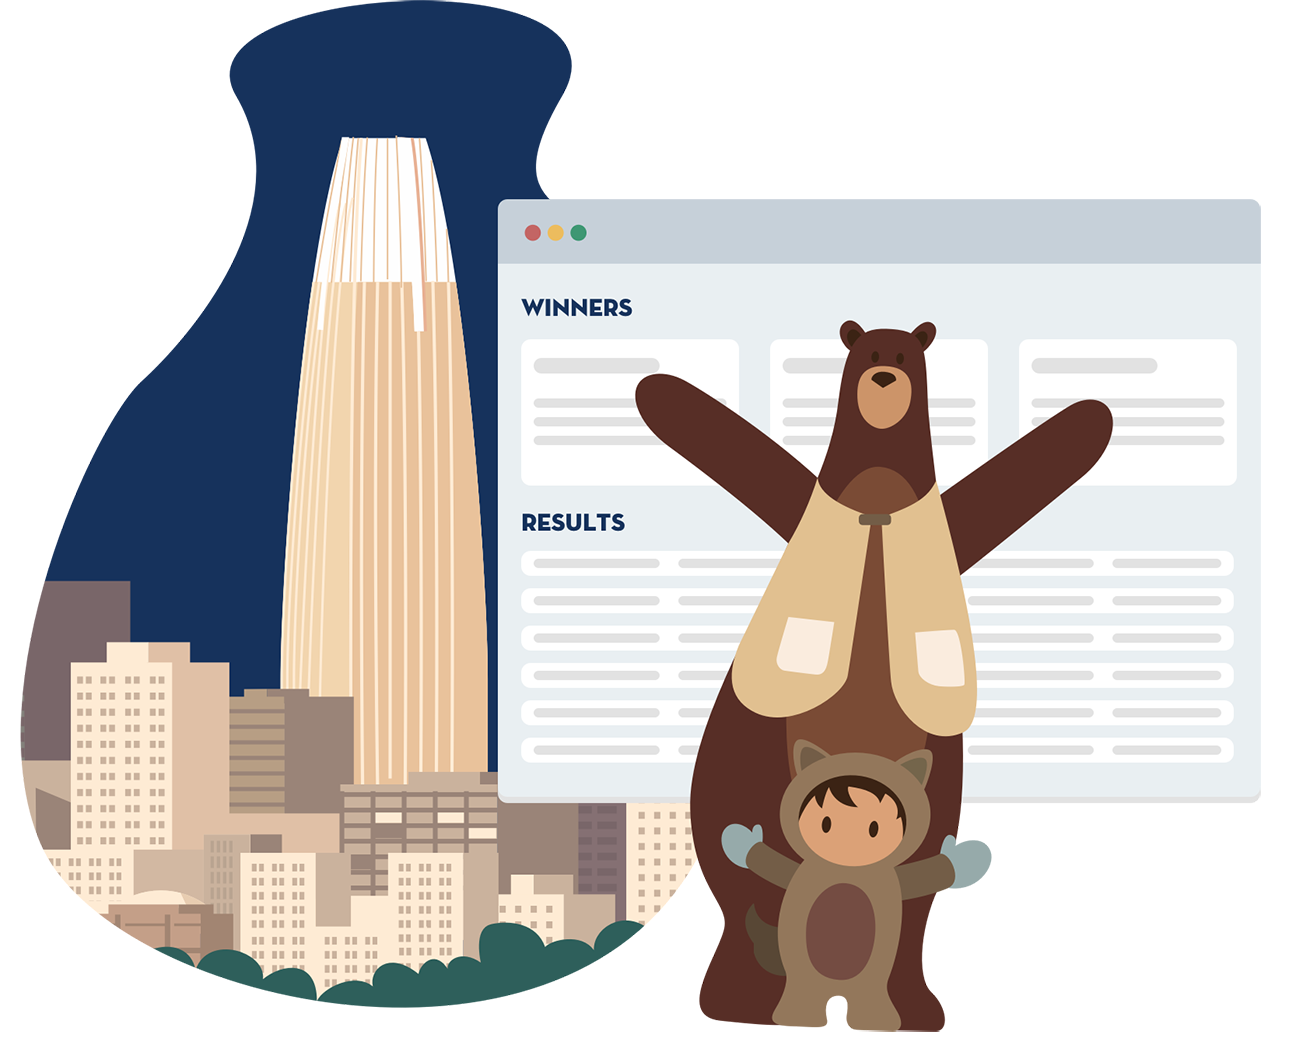 Astro and Codey standing in front of a Winners and Results page, with Salesforce Tower and other buildings in the background.